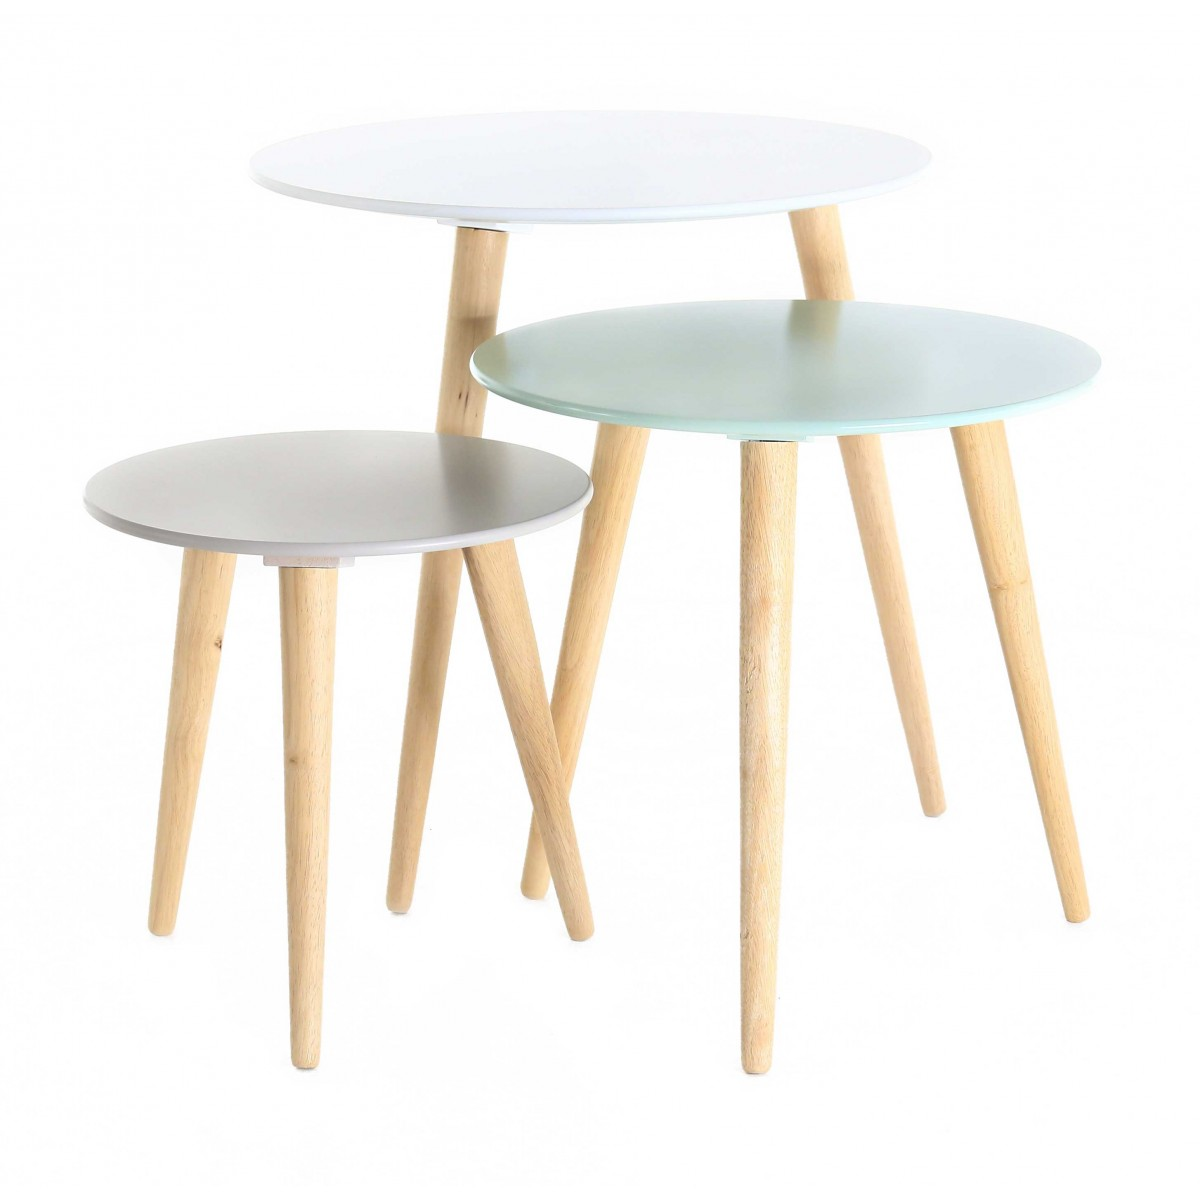 Set de 3 tables gigognes rondes scandinaves mooviin for Tables gigognes en bois